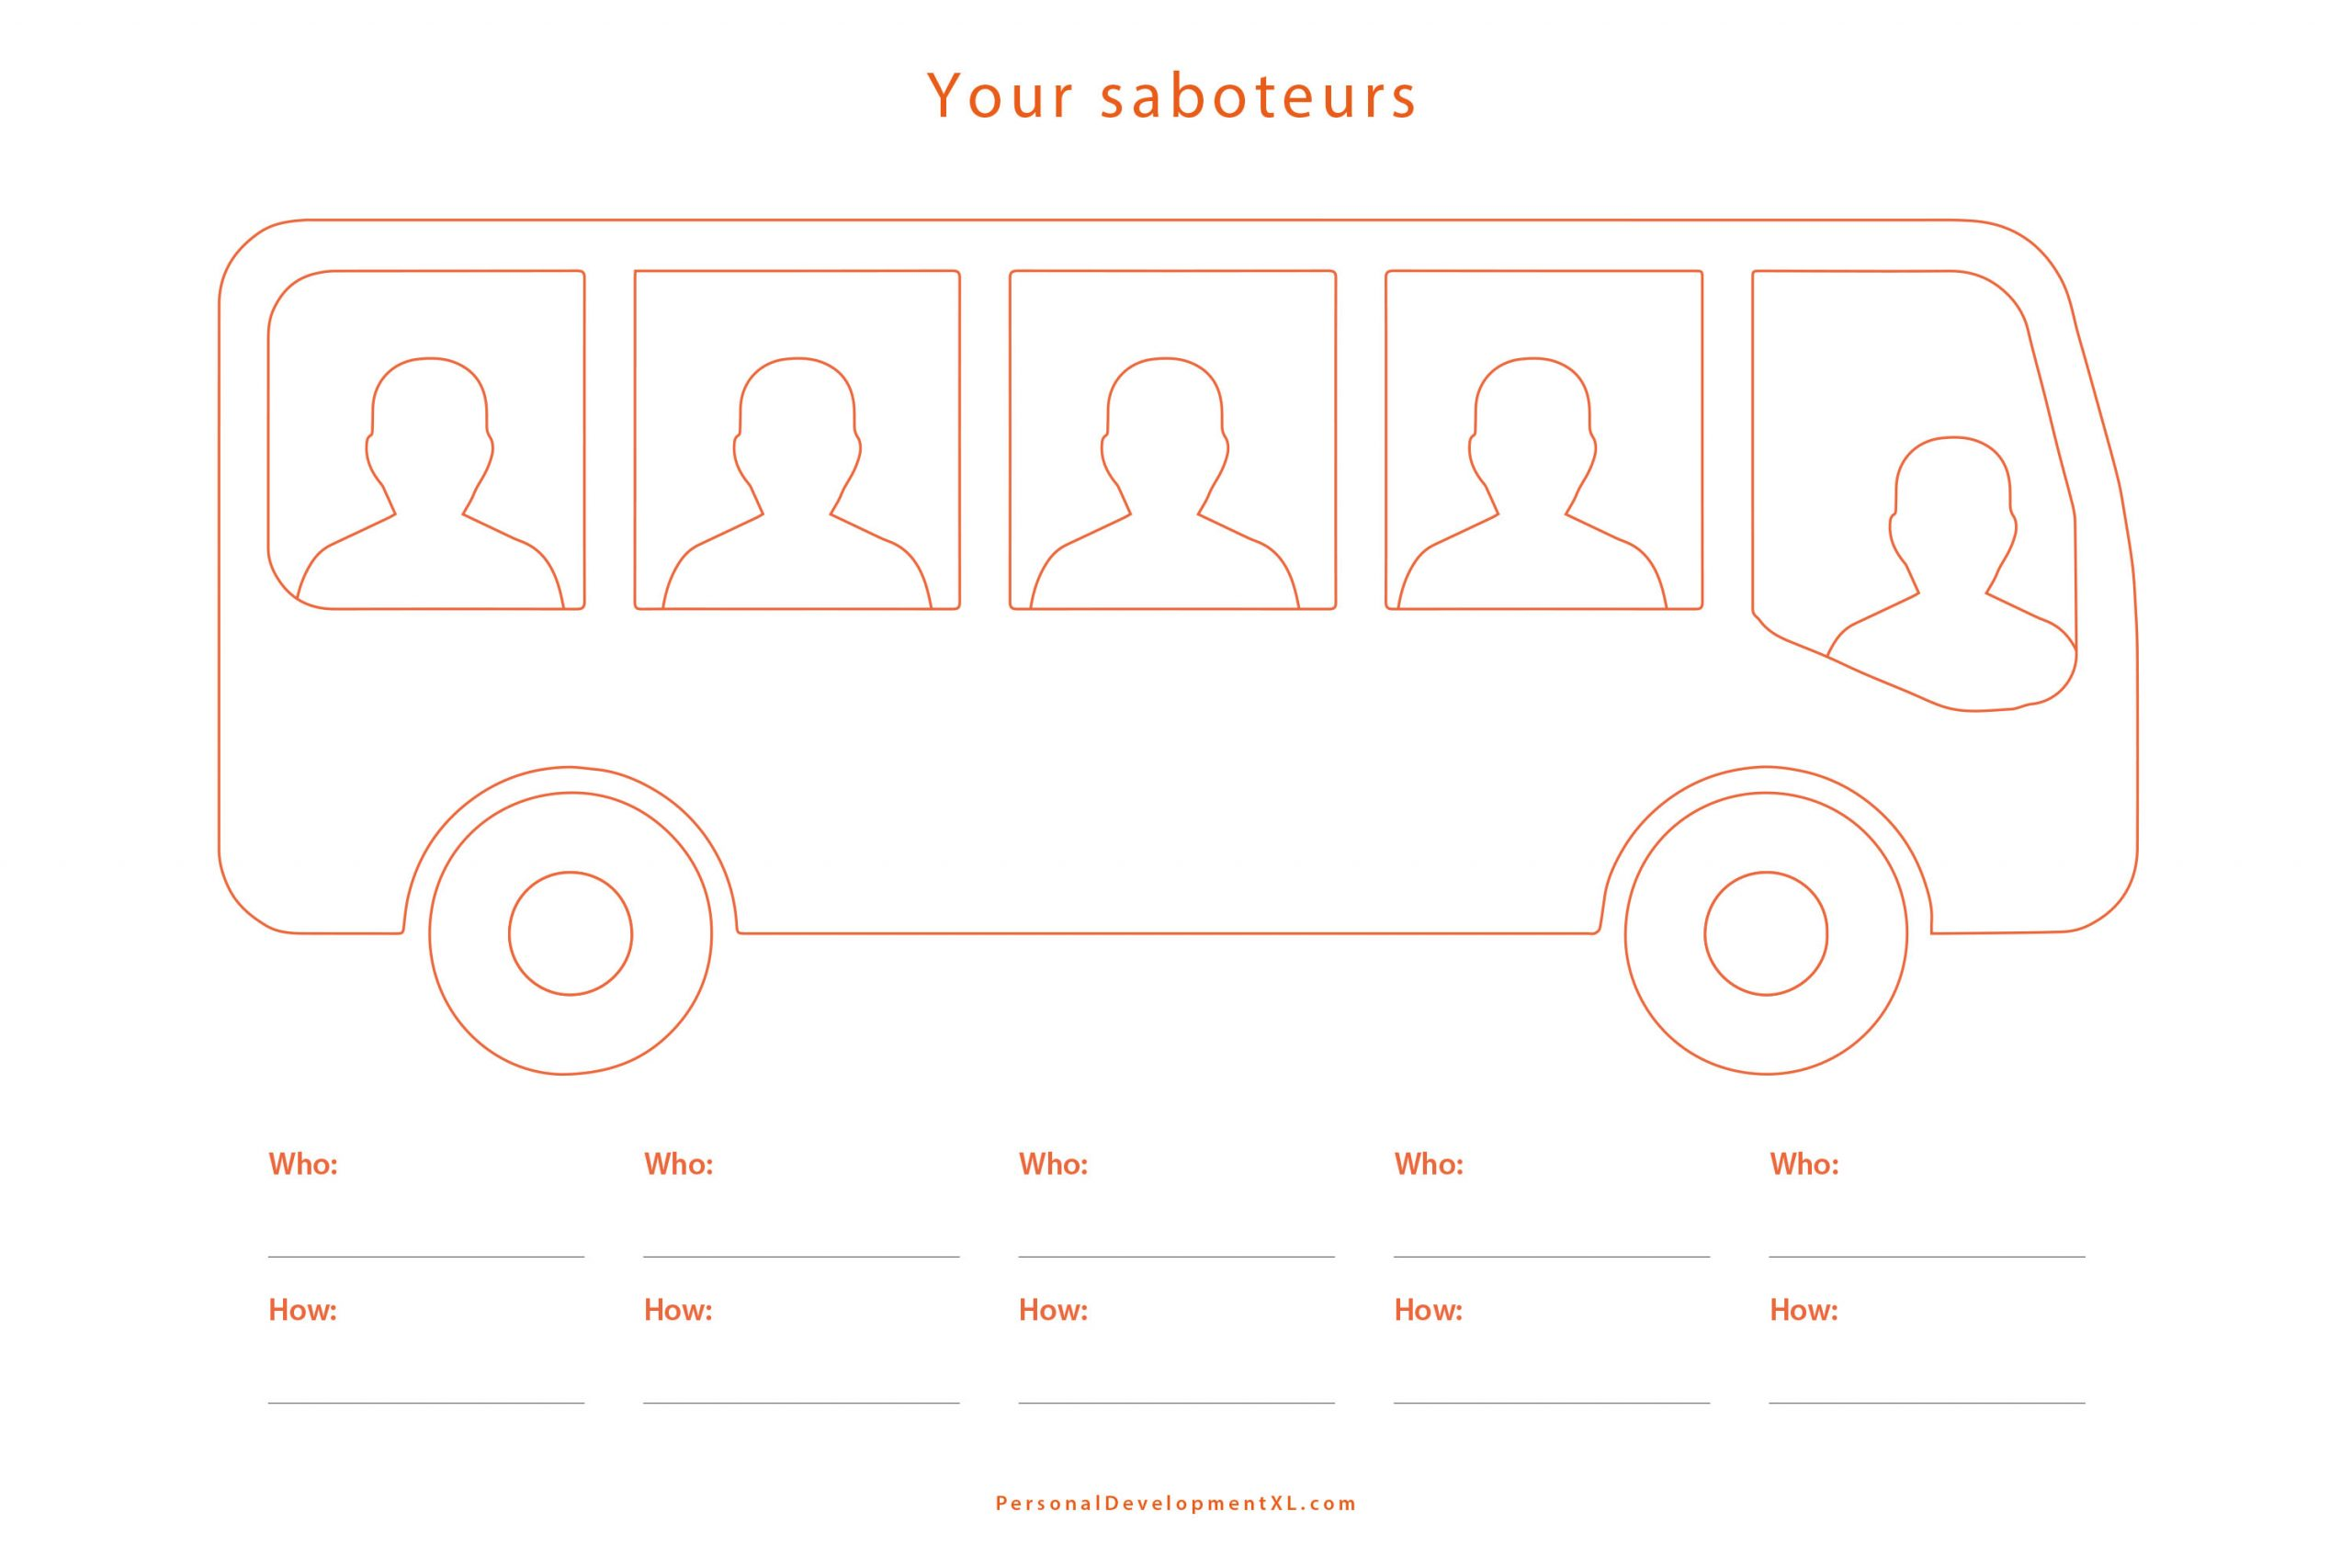 1_Your-saboteurs-template-scaled